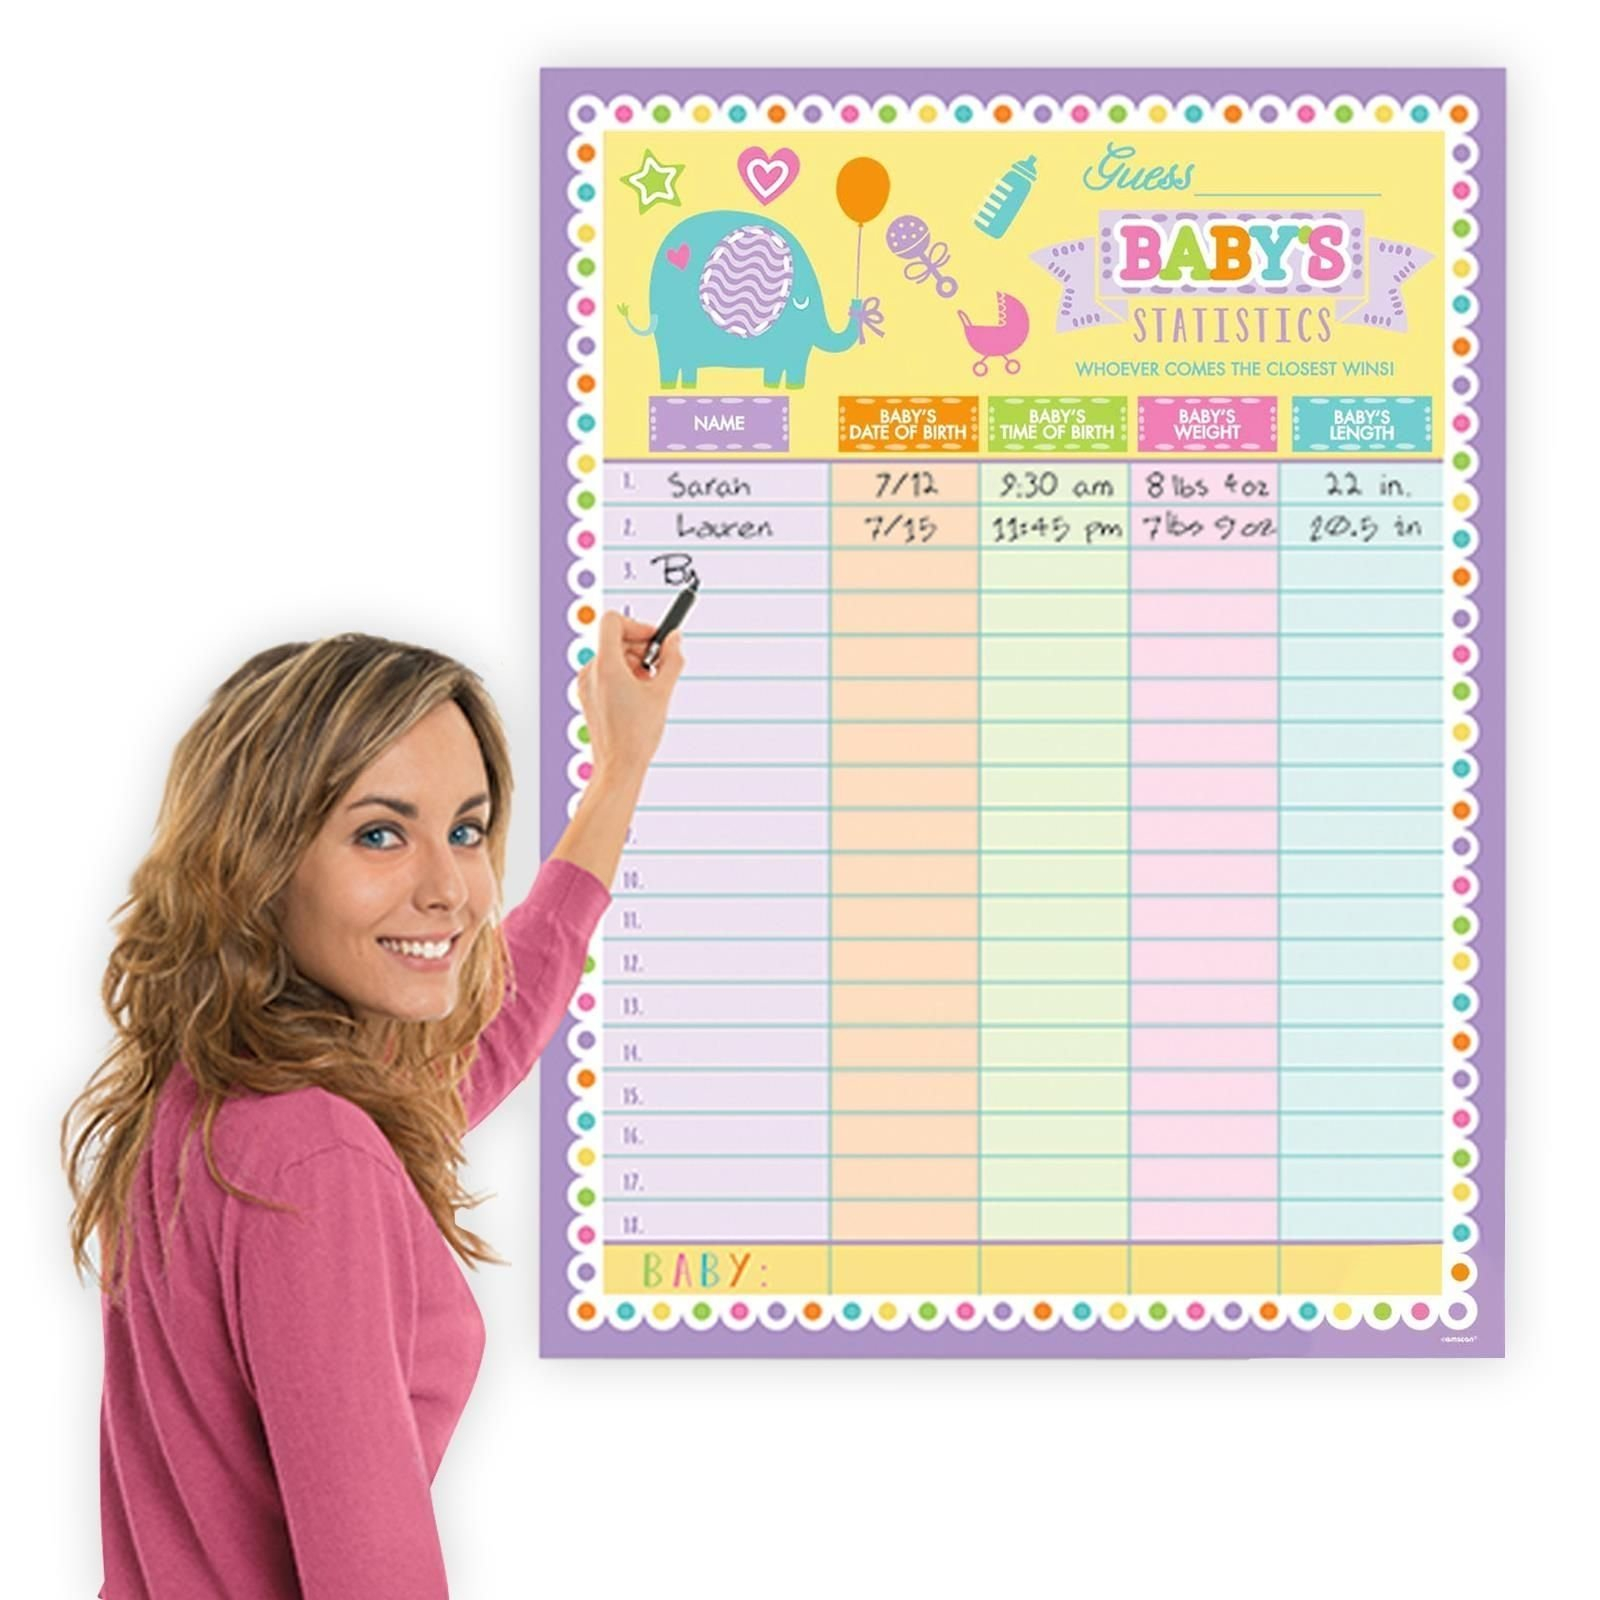 Pin On Calendar Example Baby Birth Date Guess Calender